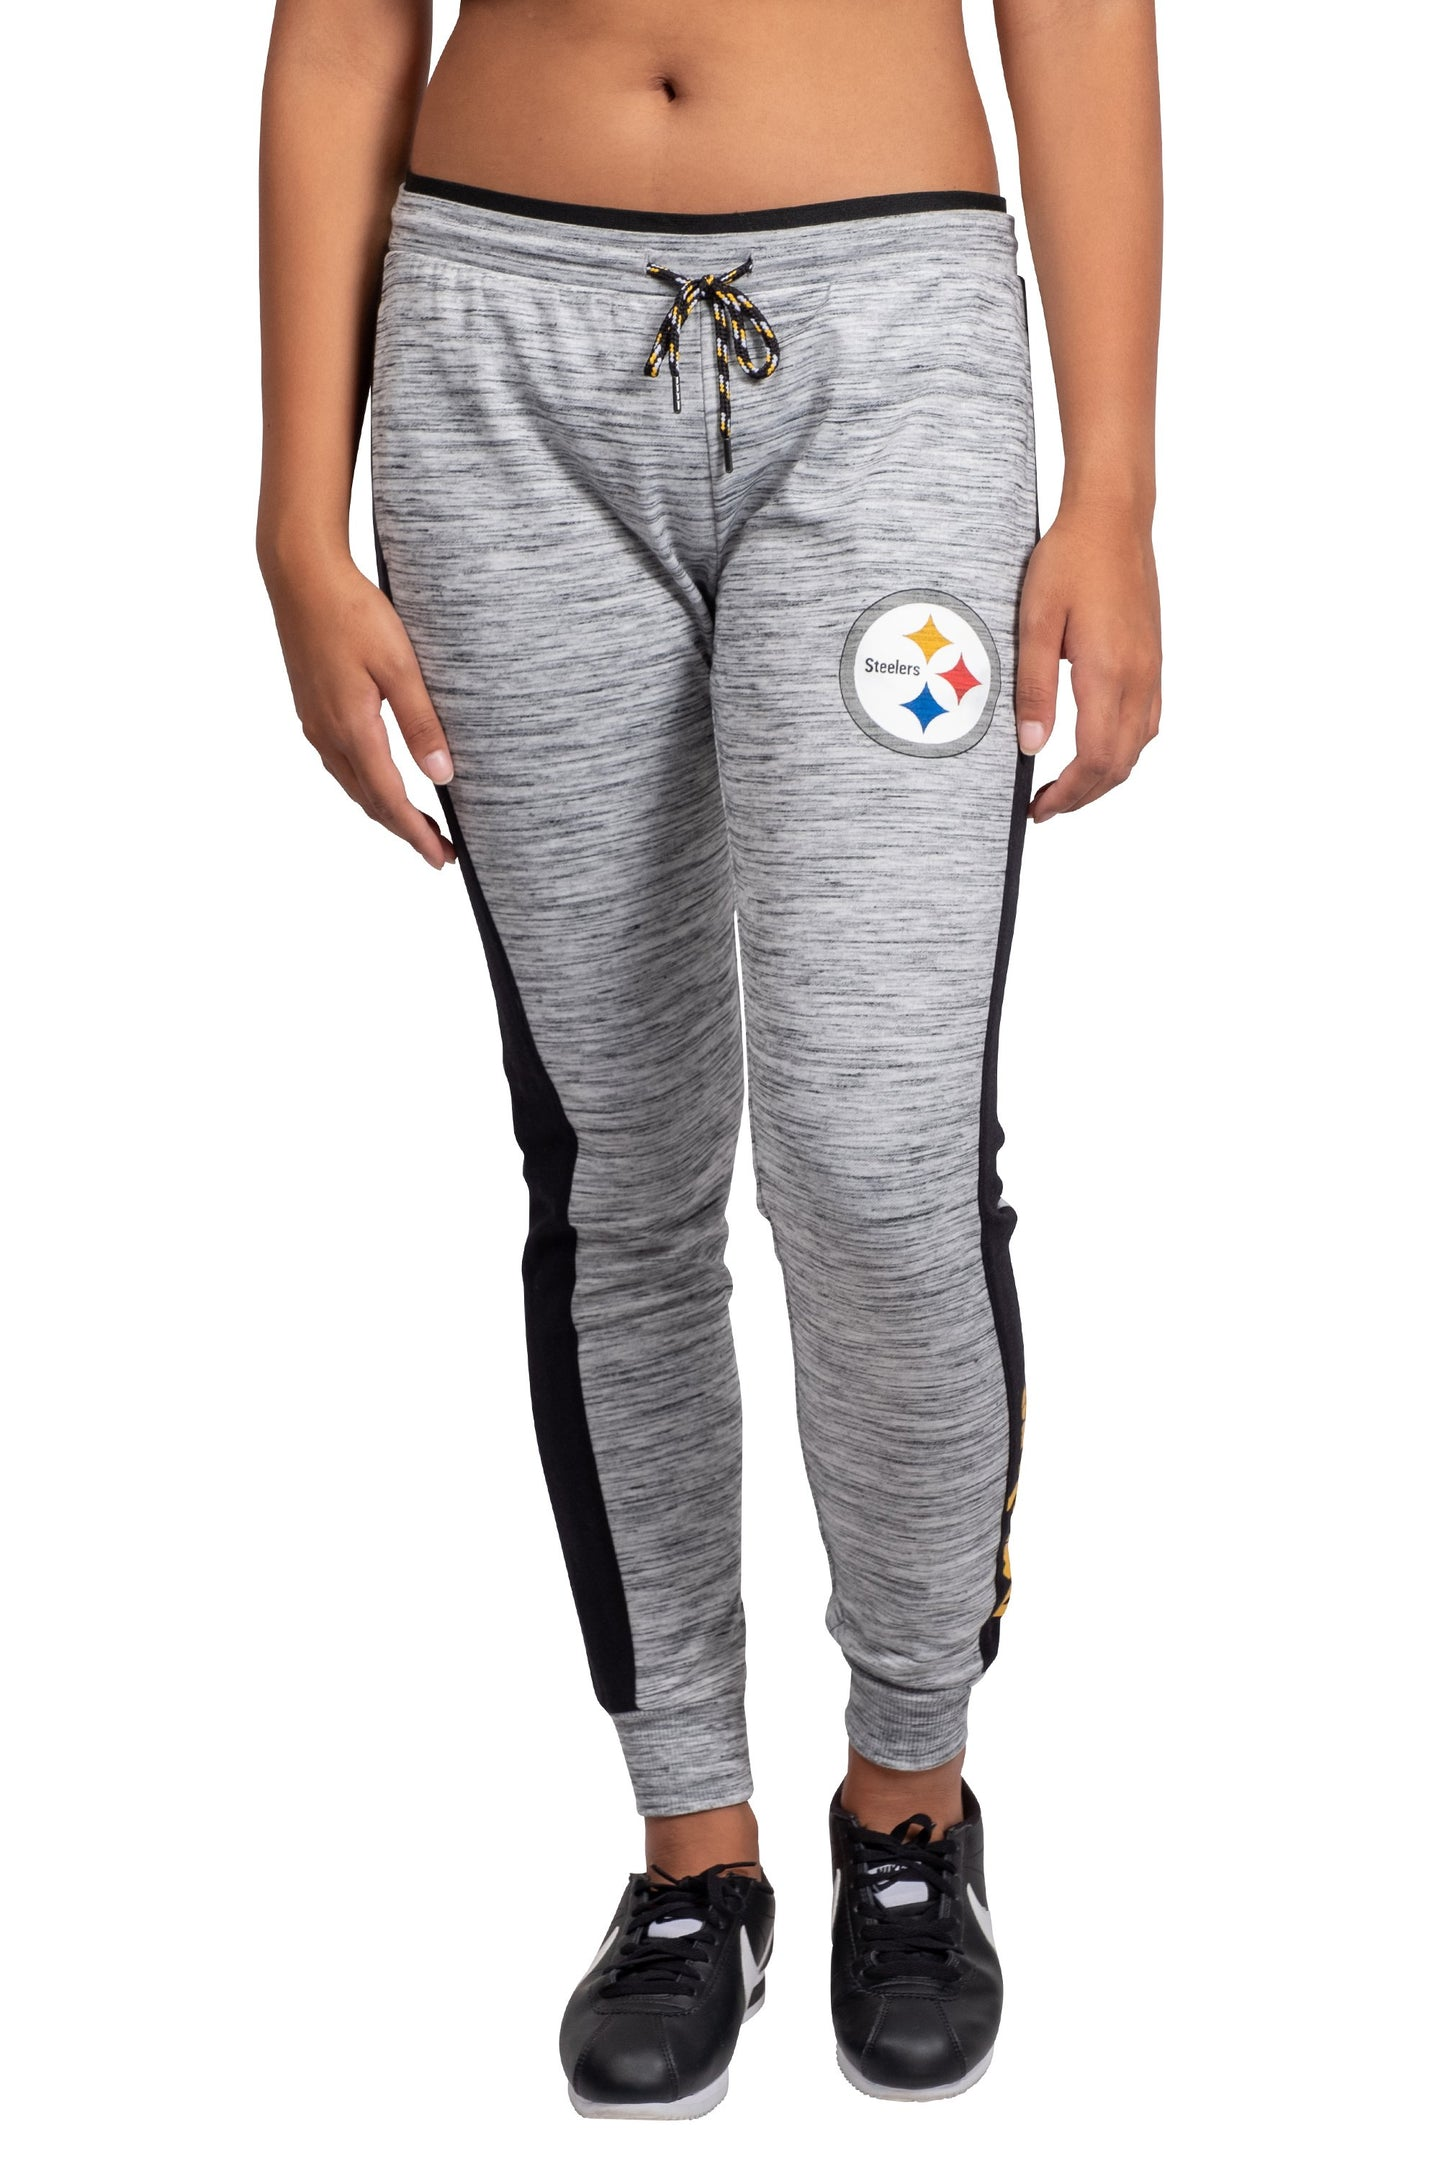 NFL Pittsburgh Steelers Women's Basic Jogger|Pittsburgh Steelers